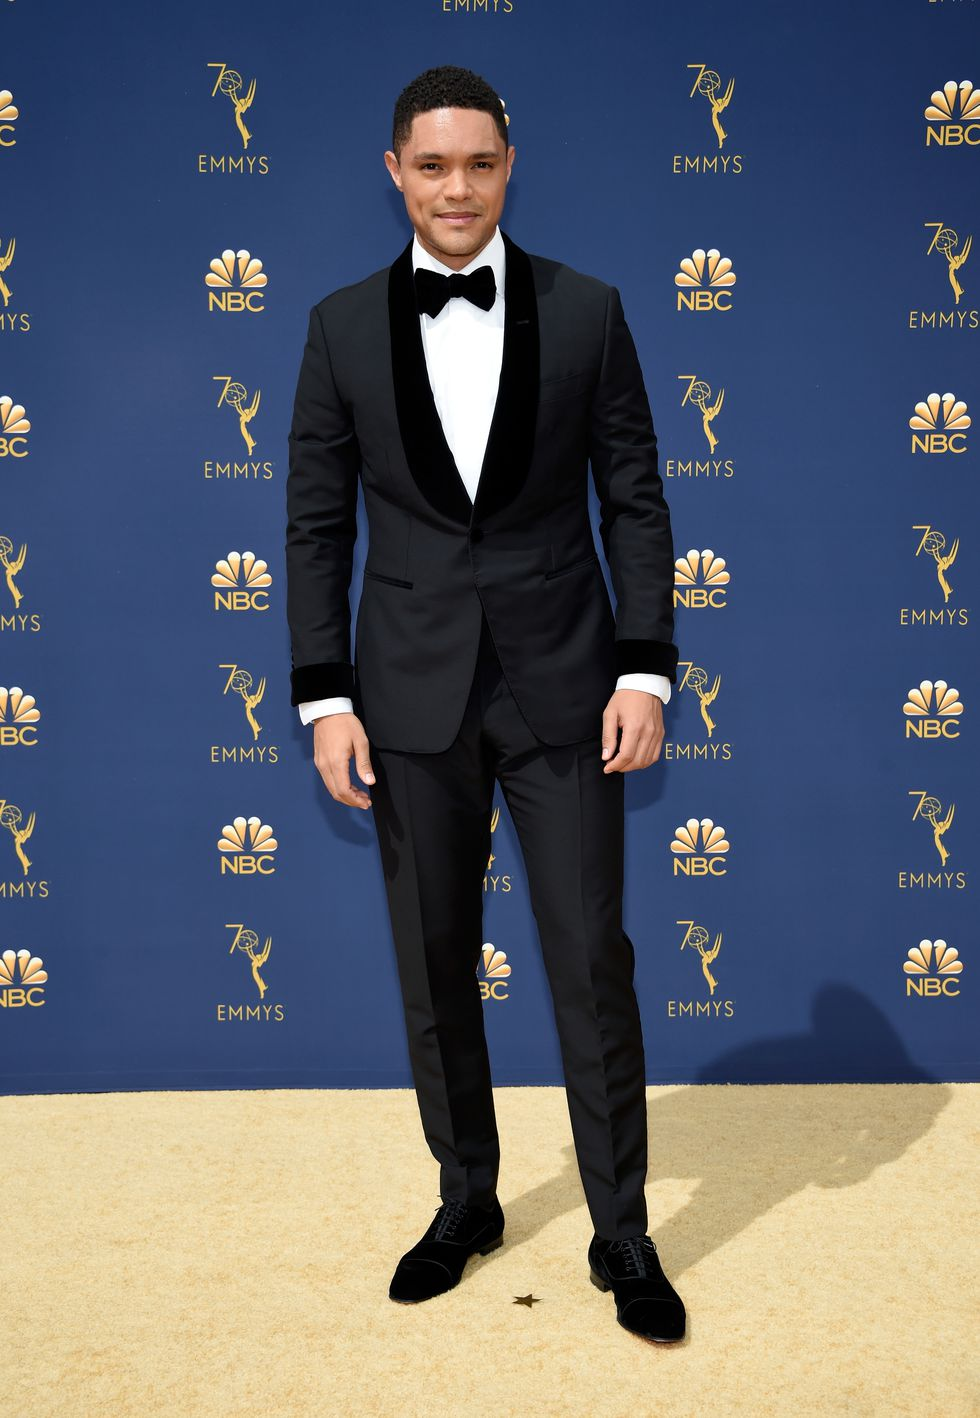 Trevor Noah in Christian Louboutin Shoes